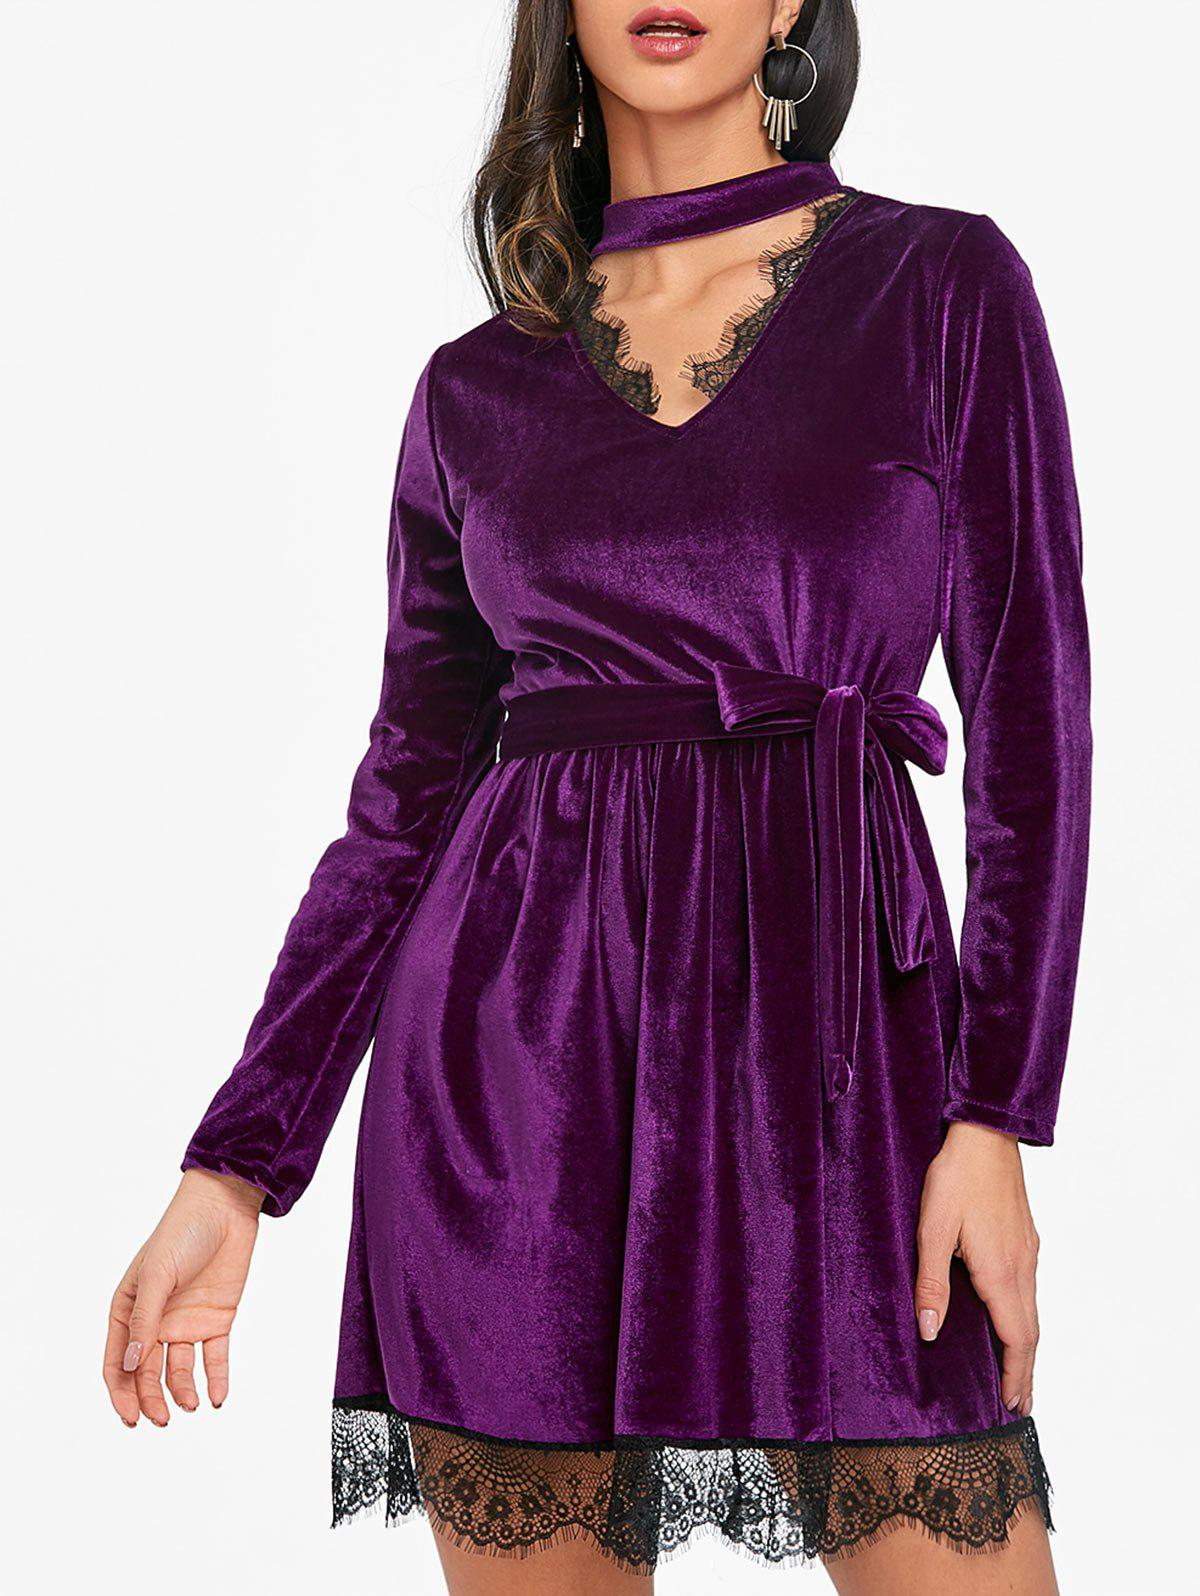 Lace Ttrimmed Belted Velvet Dress - PURPLE M